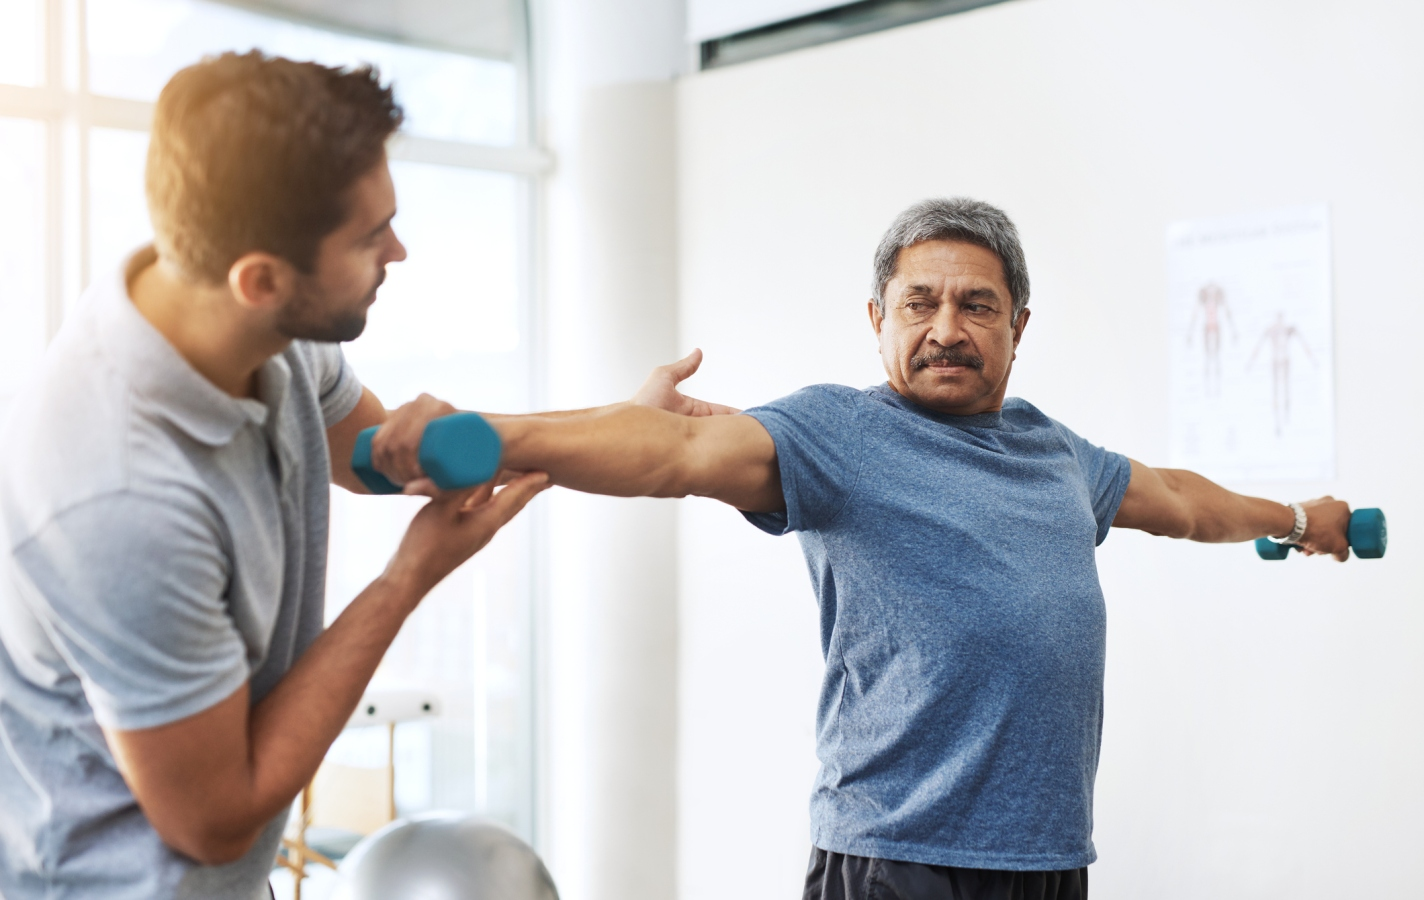 physical therapist working with male patient lifting weights